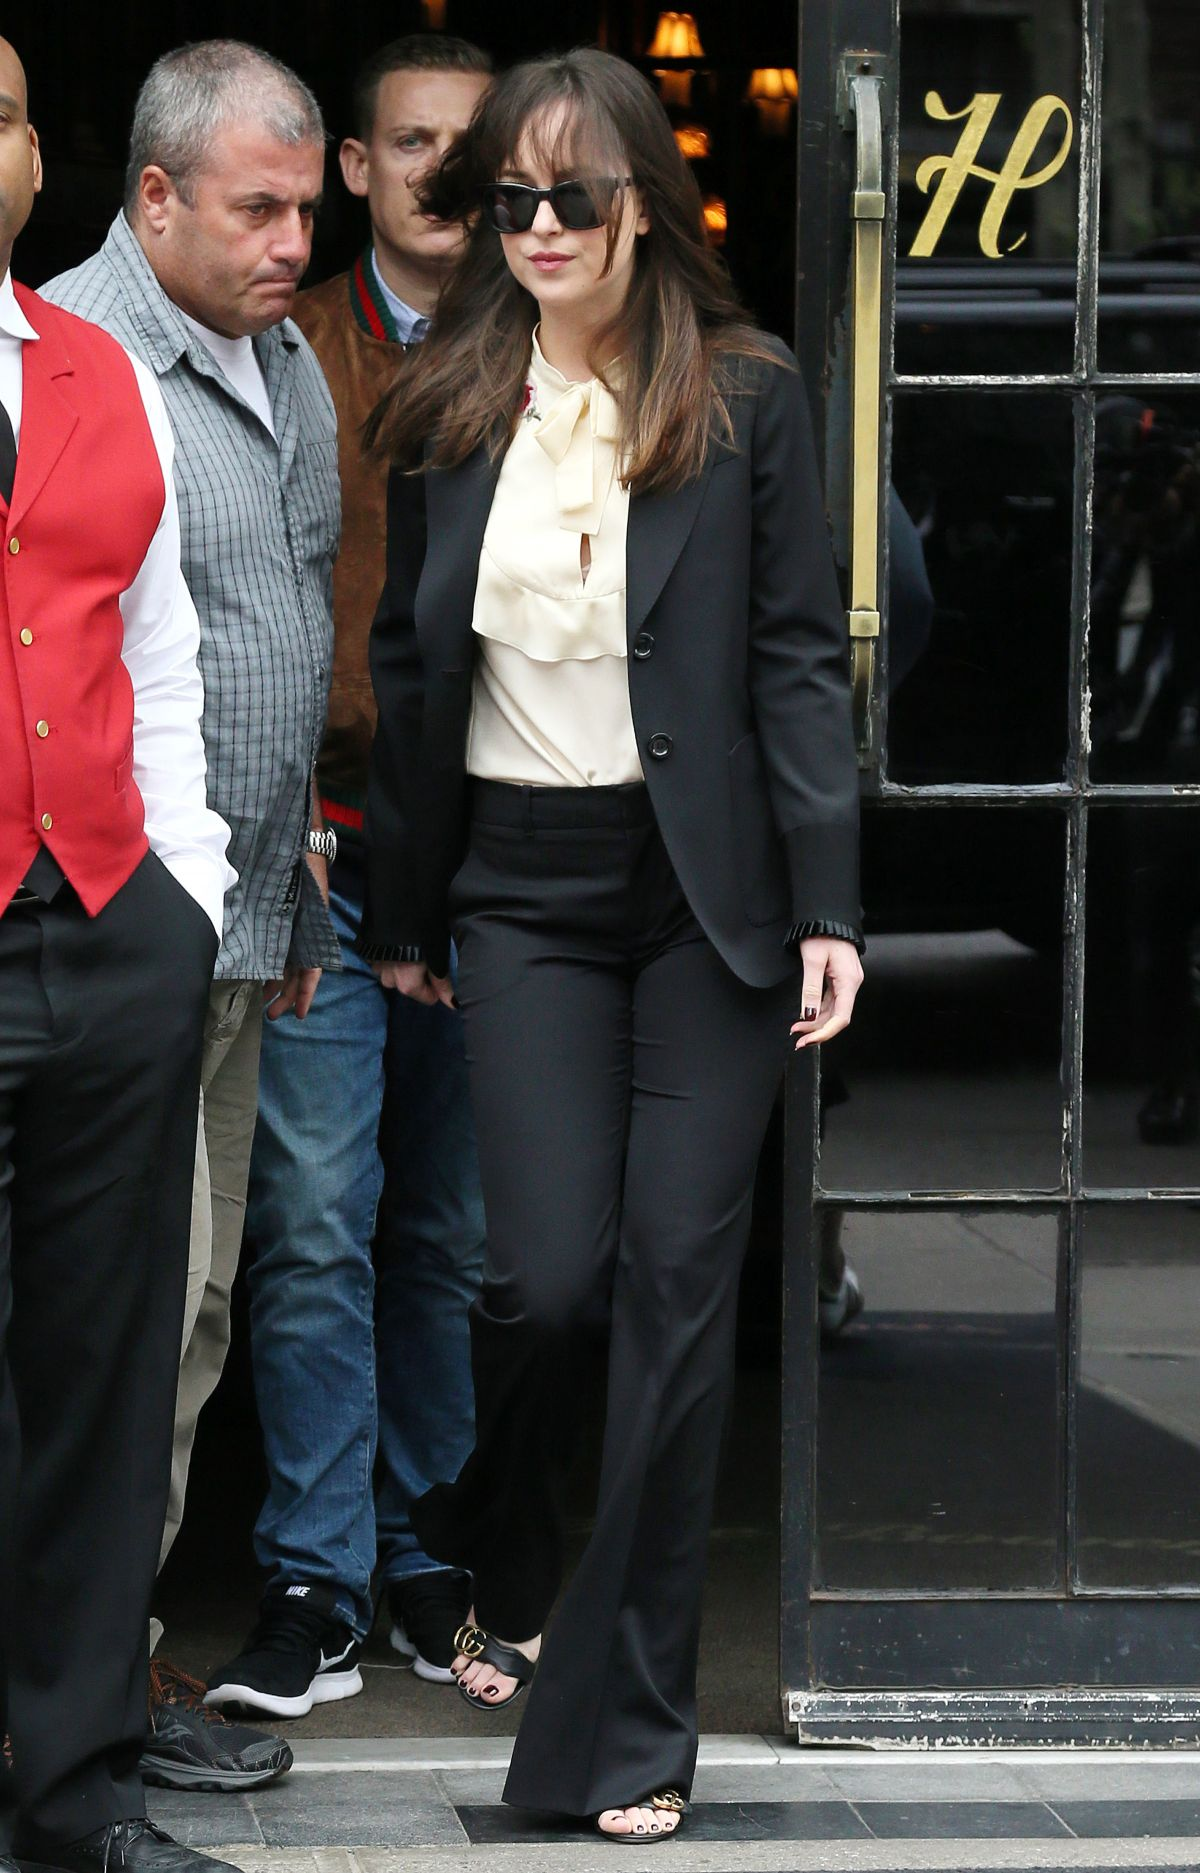 Dakota johnson leaving the bowery hotel in nyc new pictures